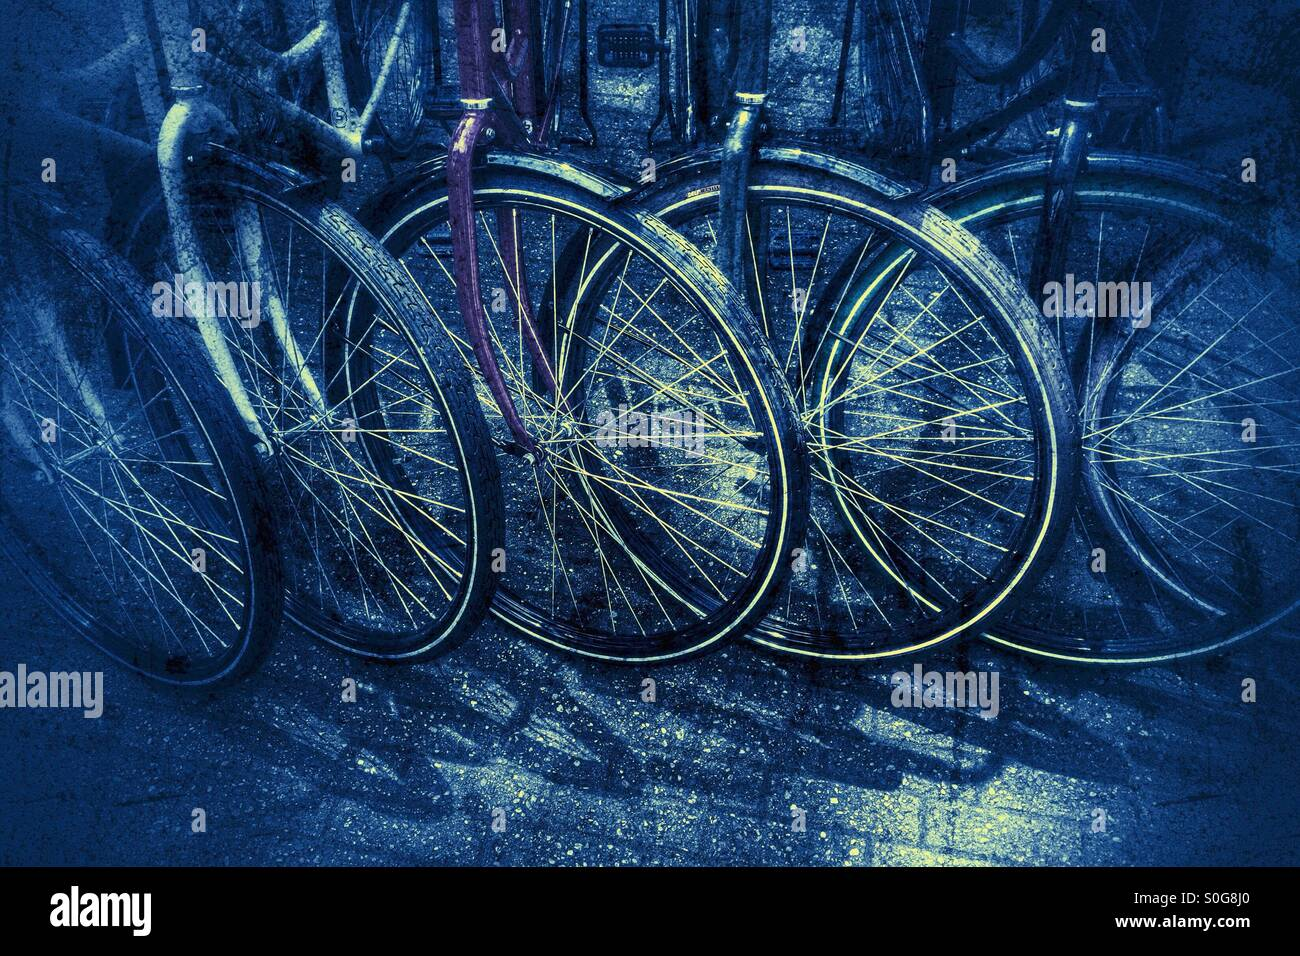 A row of bicycle wheels - Stock Image